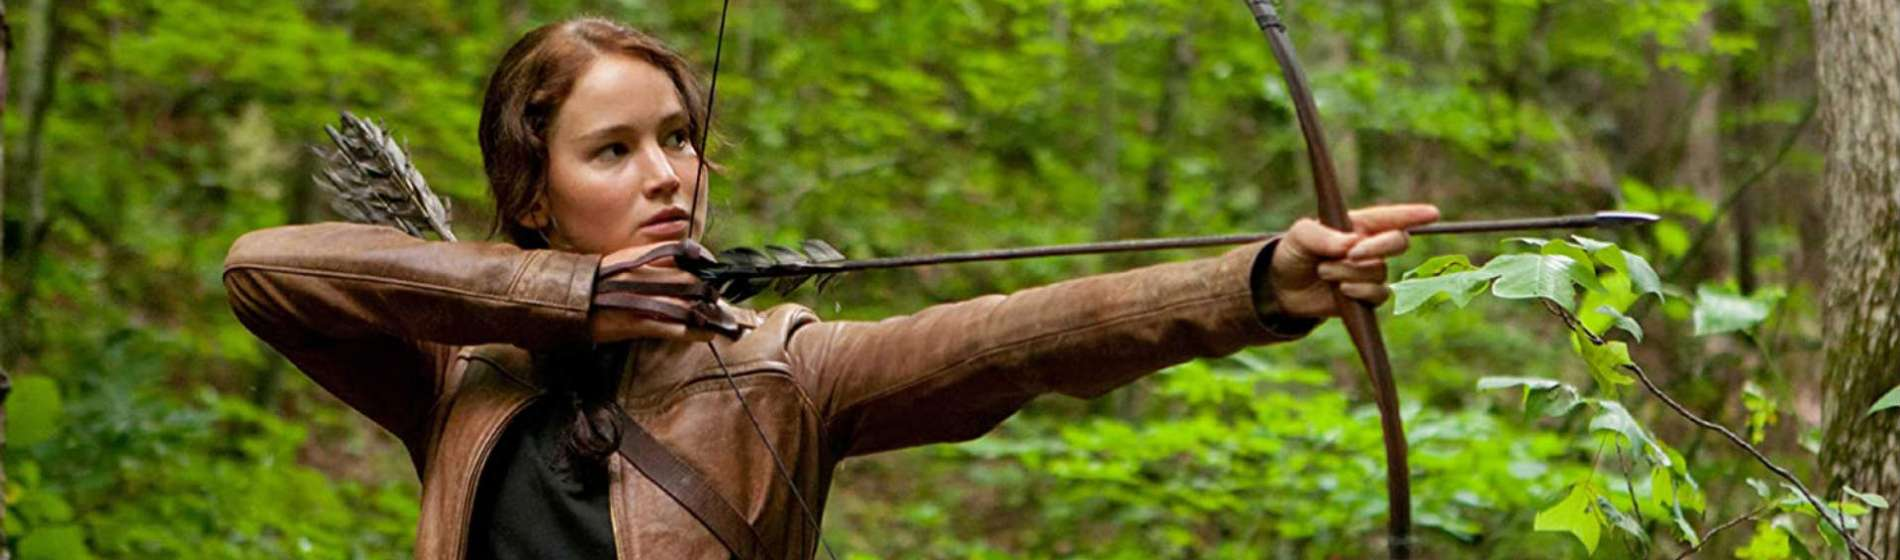 the-hunger-games-jennifer-lawrence-feature-image